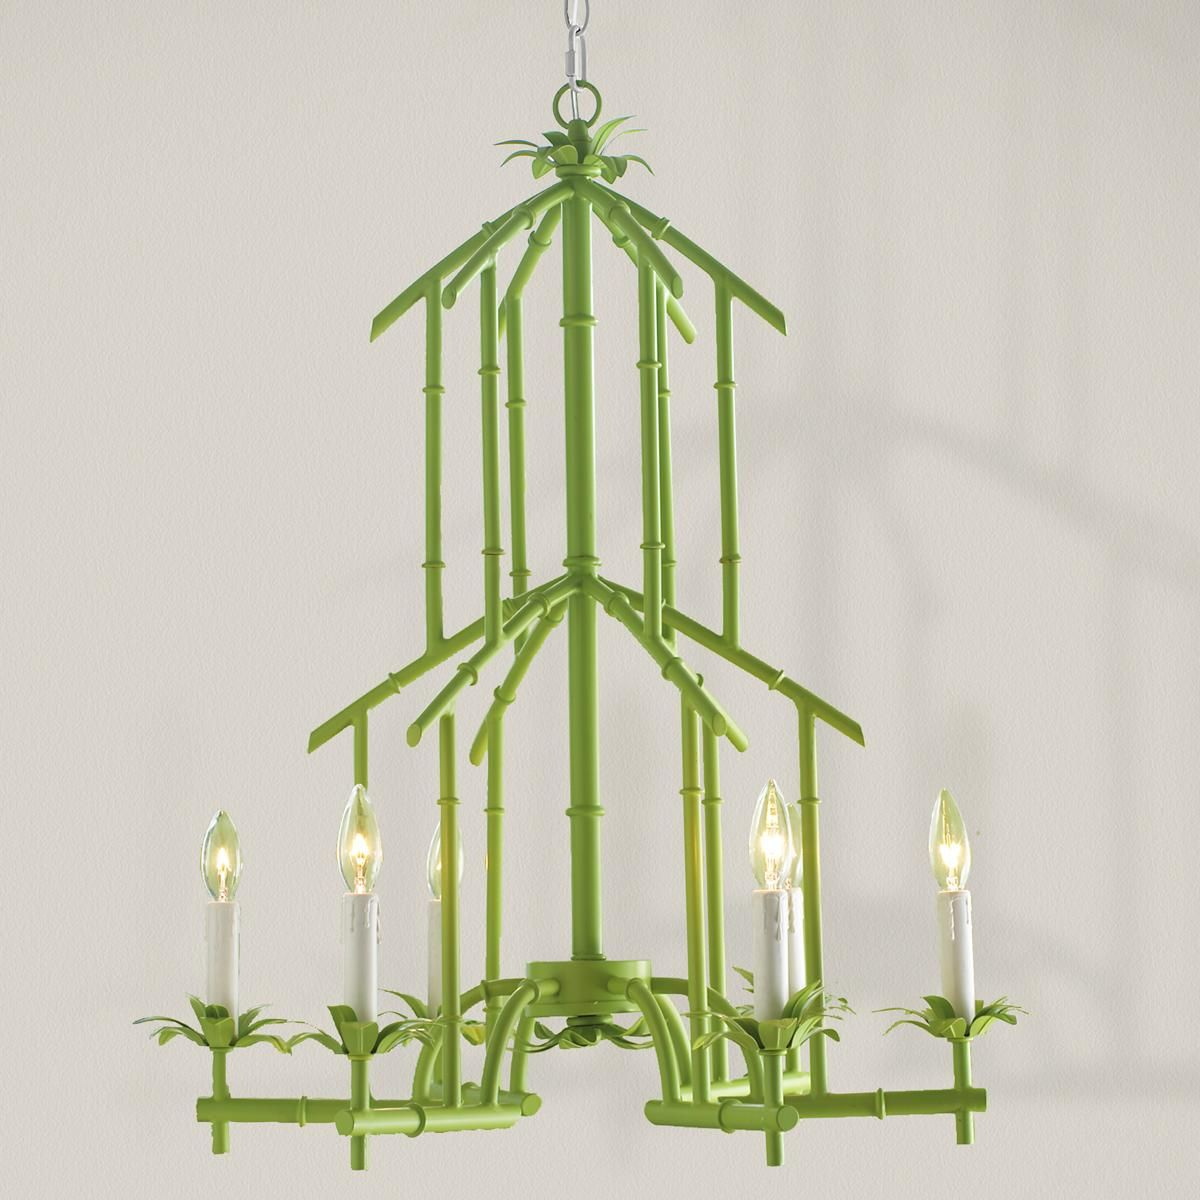 Bamboo tower chandelier 6 light chandeliers tower and bamboo design bamboo tower chandelier 6 light arubaitofo Images